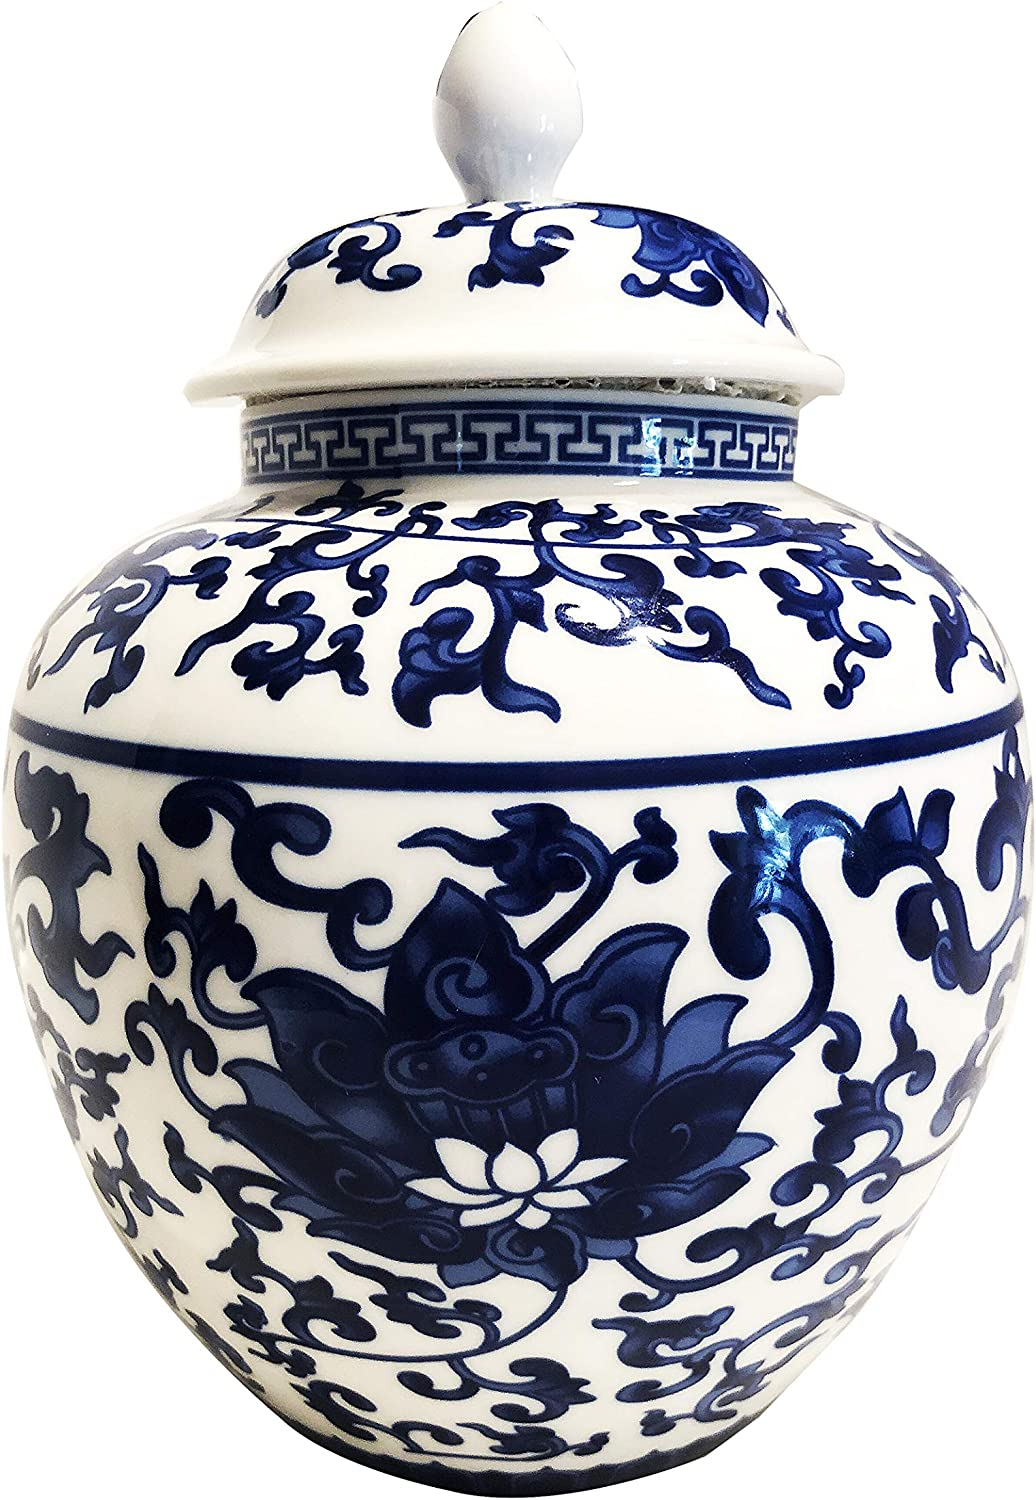 Ancient Chinese Style Blue and White Porcelain Helmet-shaped Temple Jar.Large size lotus pattern